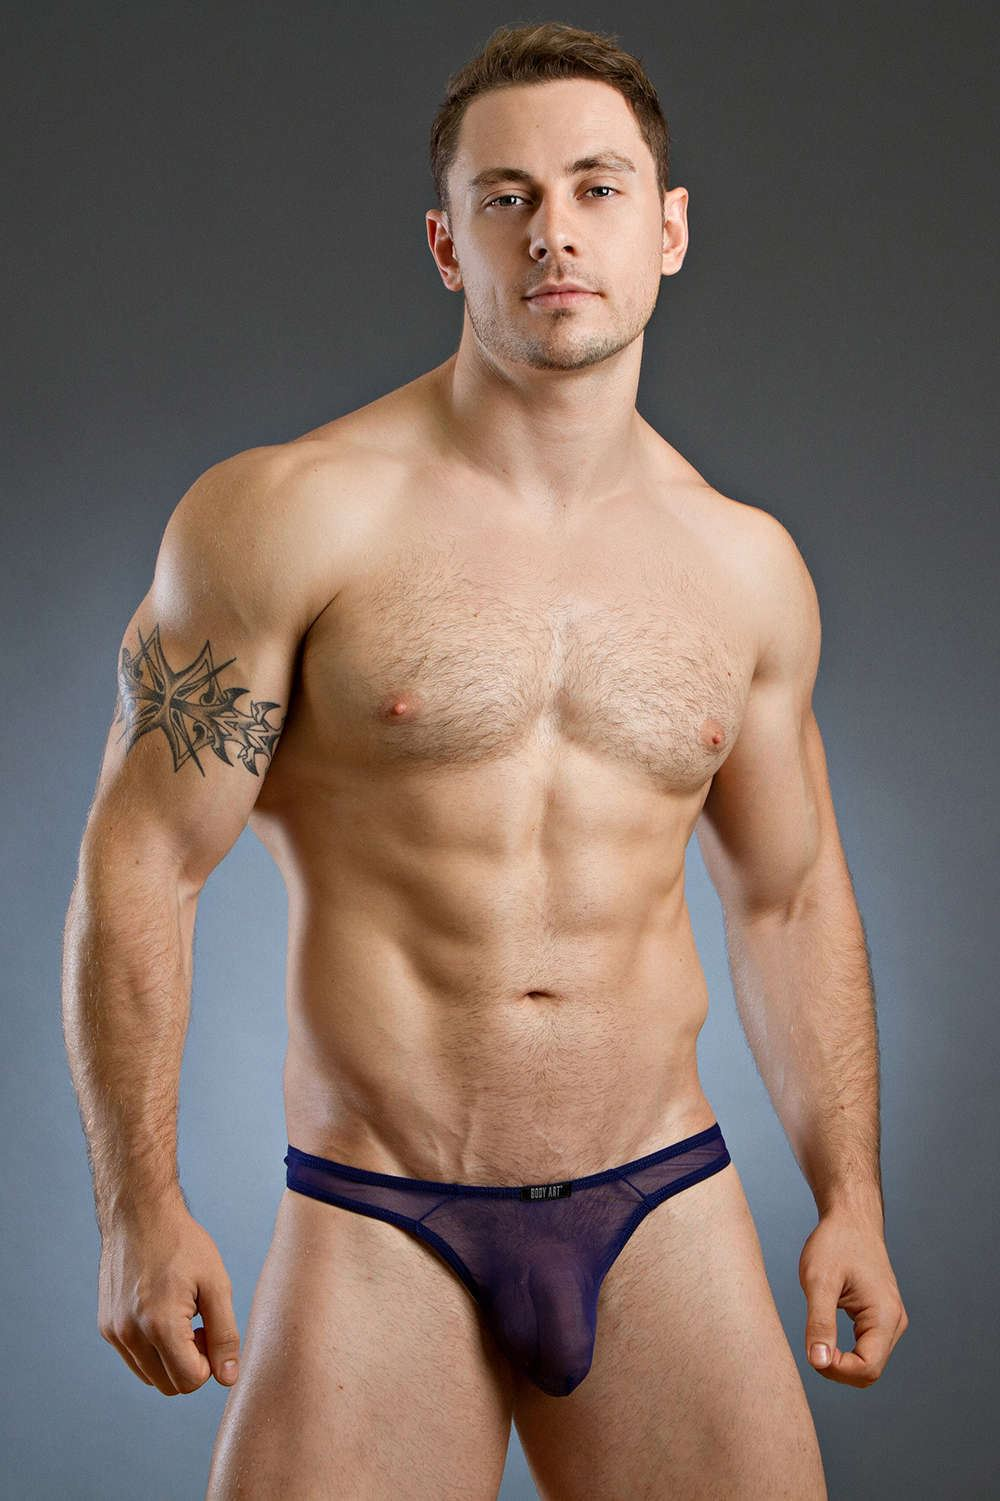 Take your underwear up a notch with sexy, stylish, designer men's underwear. Men's thongs, tangas, boxers, and lace lingerie. We also have an excellent selection of men's lingerie to spice things up.